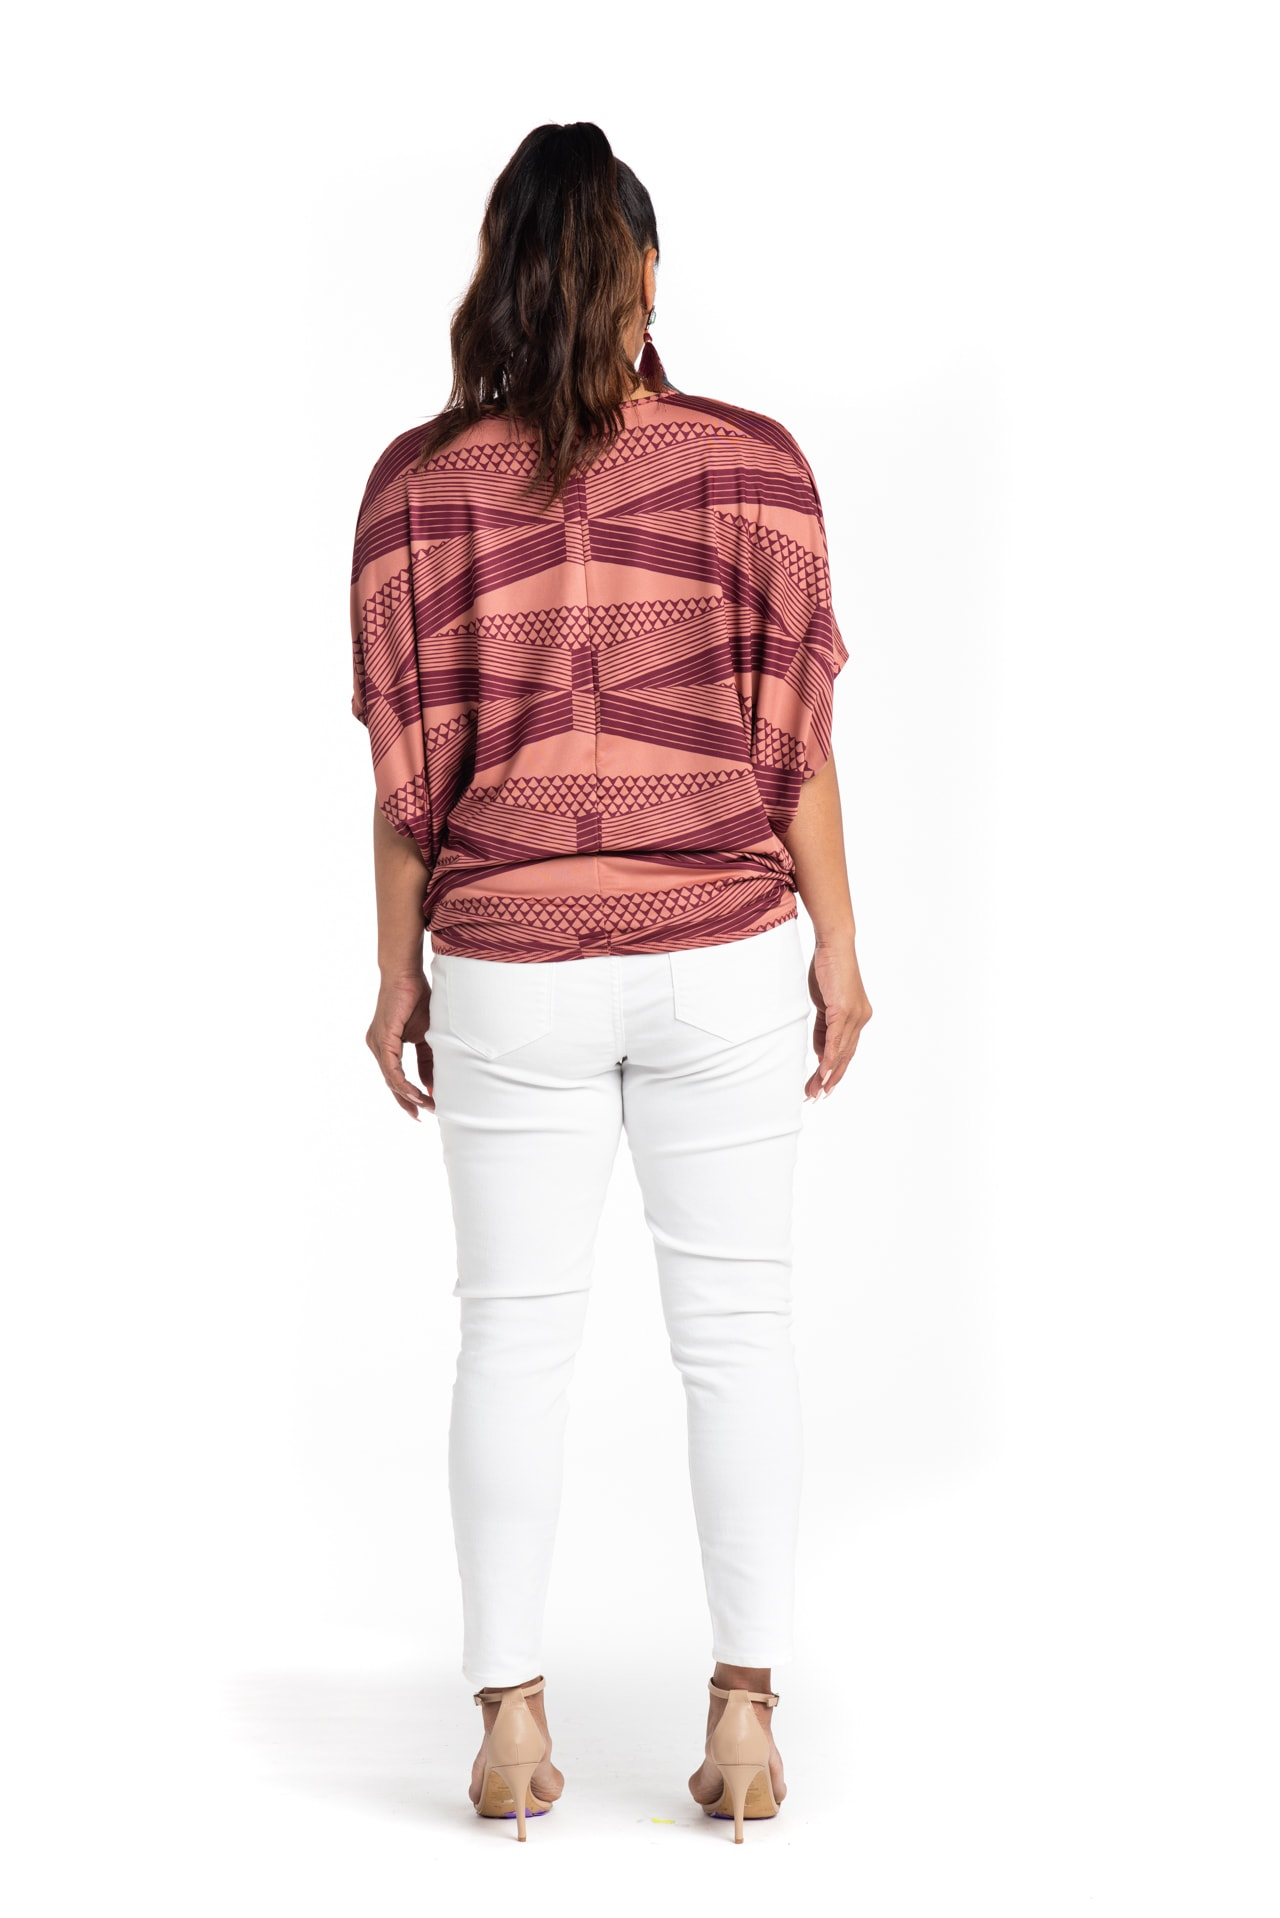 Model wearing Mahalo Nui Shirt in Copper - Back View